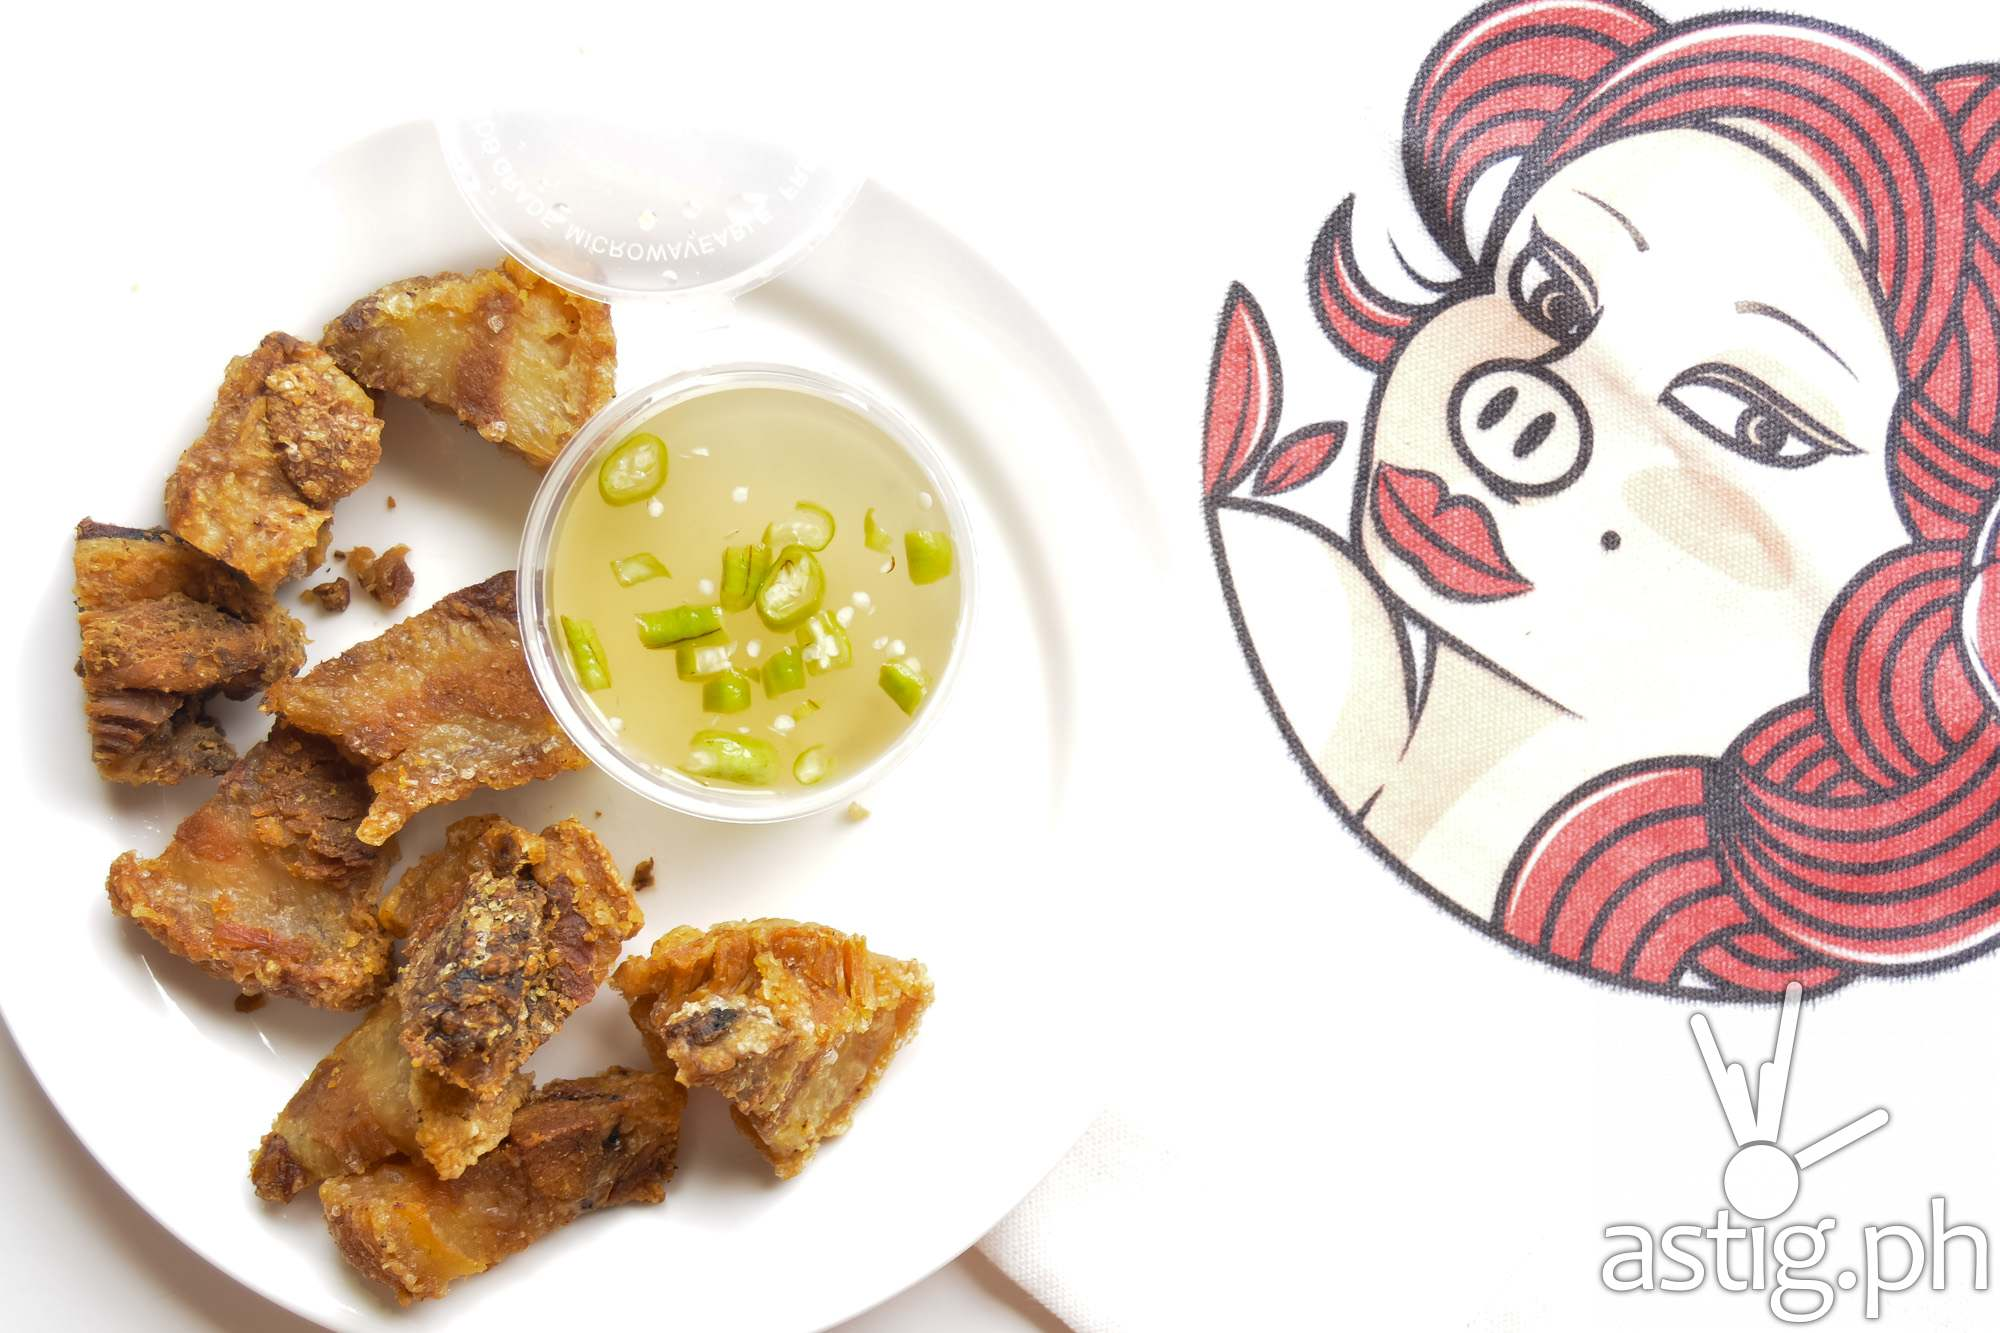 Cooked bagnet - Chica's Bagnet Express